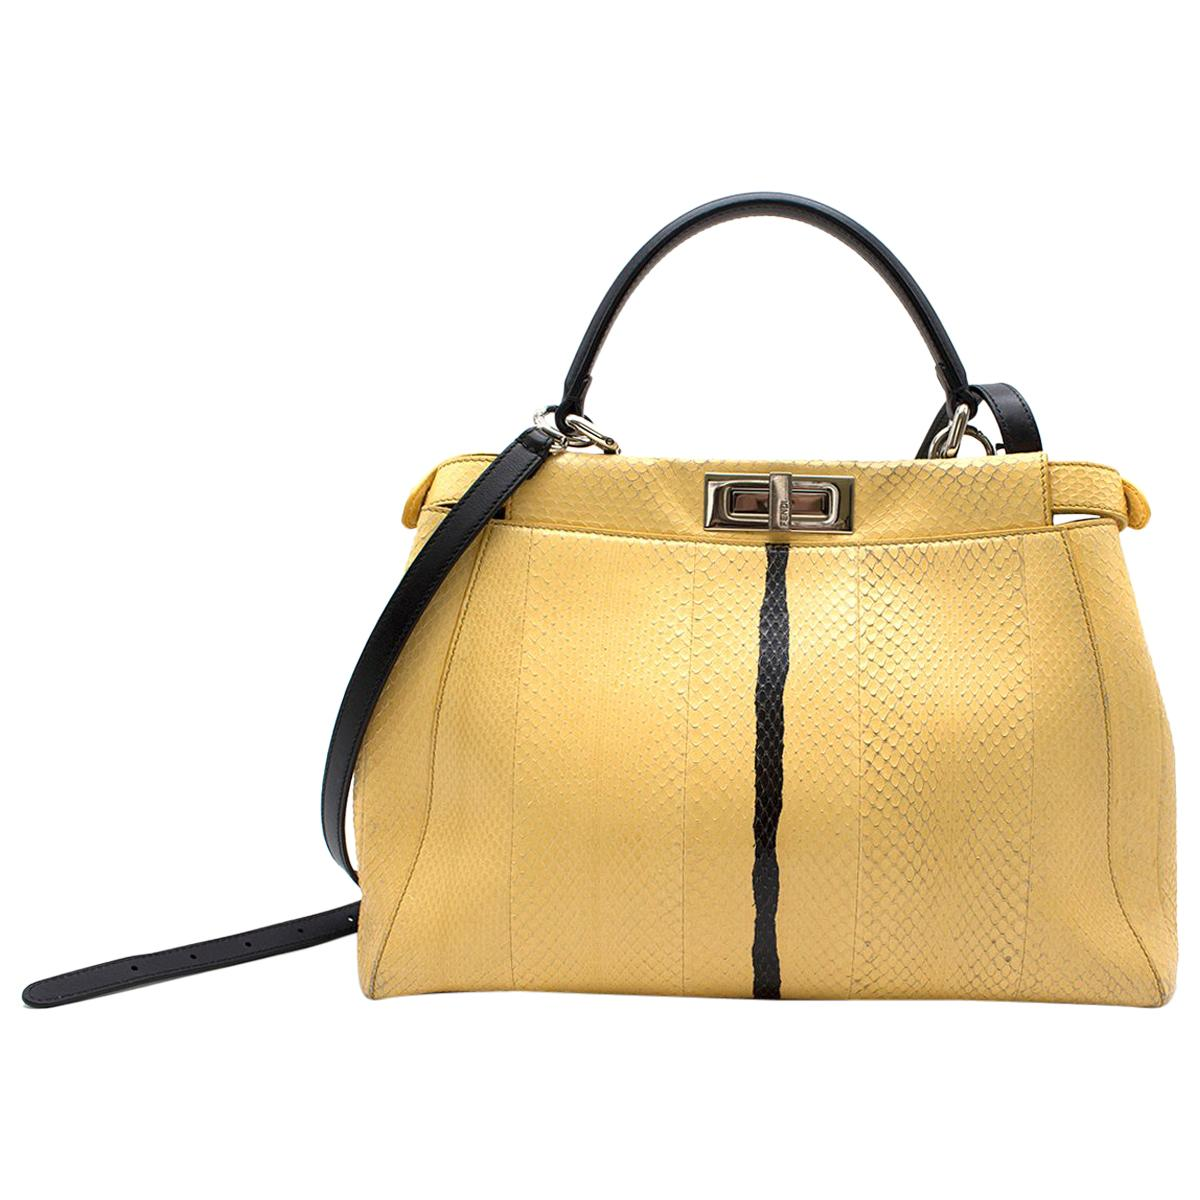 cbee9601c1 Yellow Leather Handbags - 122 For Sale on 1stdibs